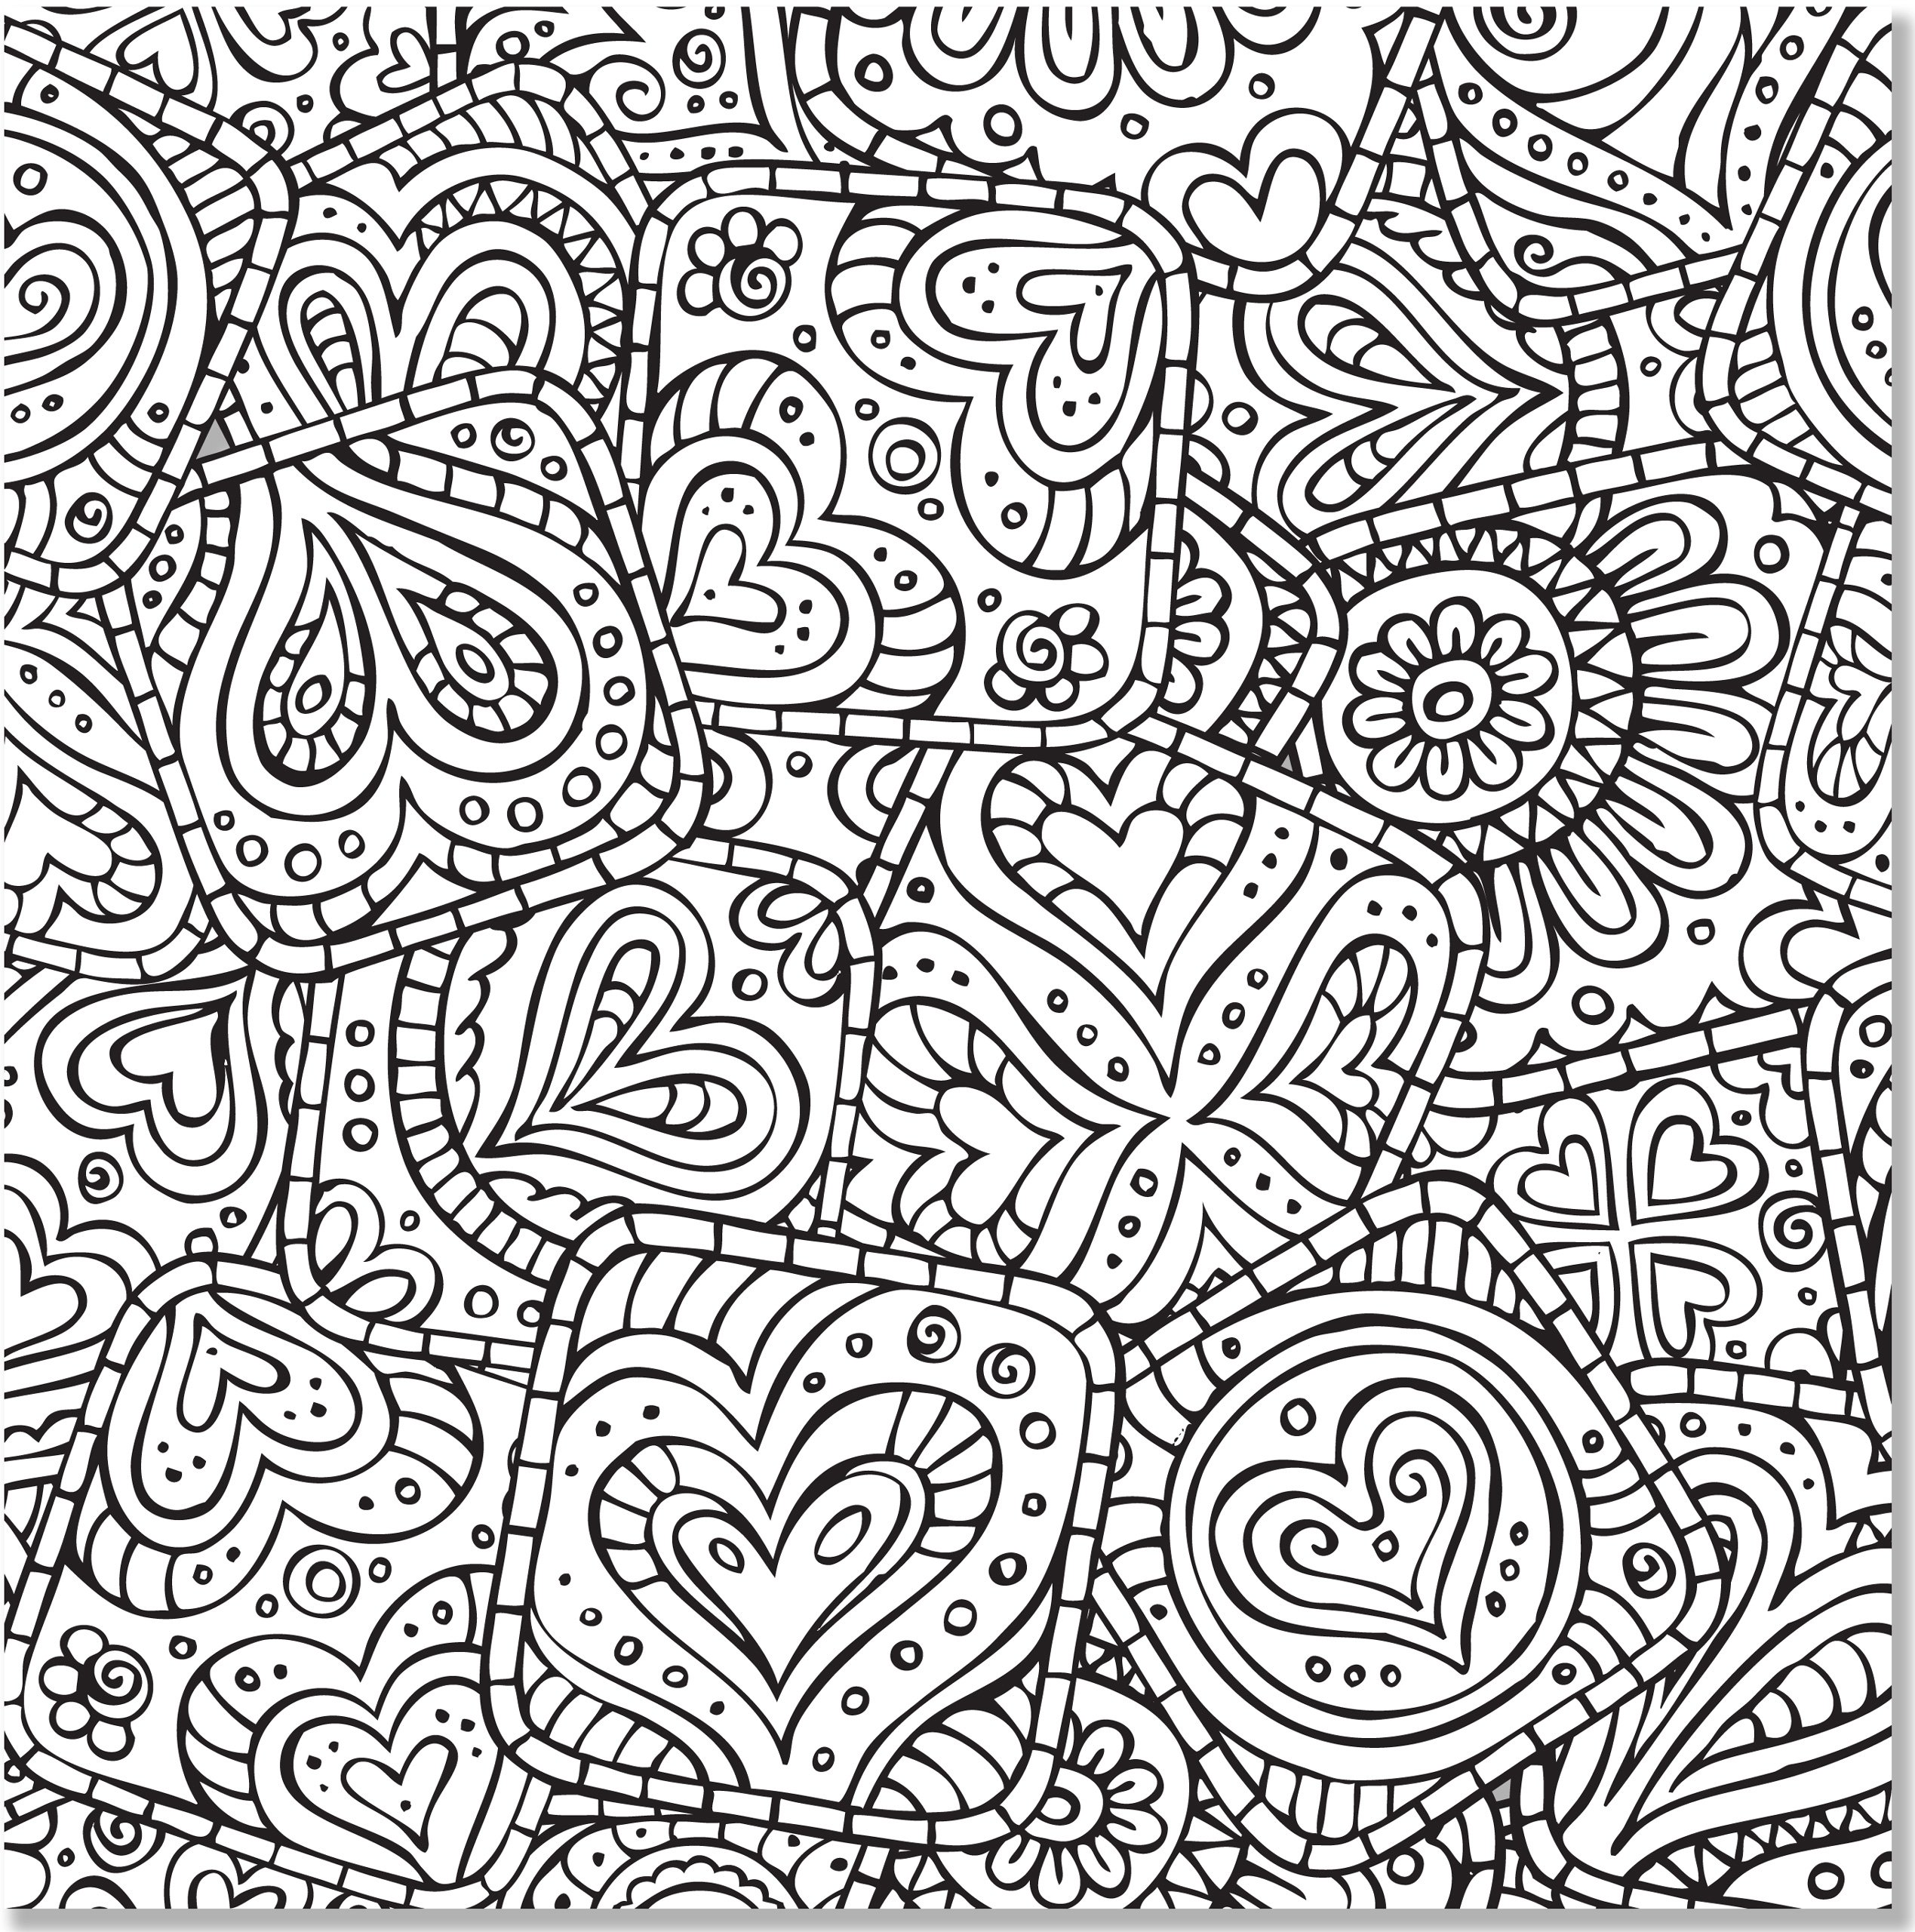 Amazon Com Doodle Designs Adult Coloring Book 31 Stress Relieving